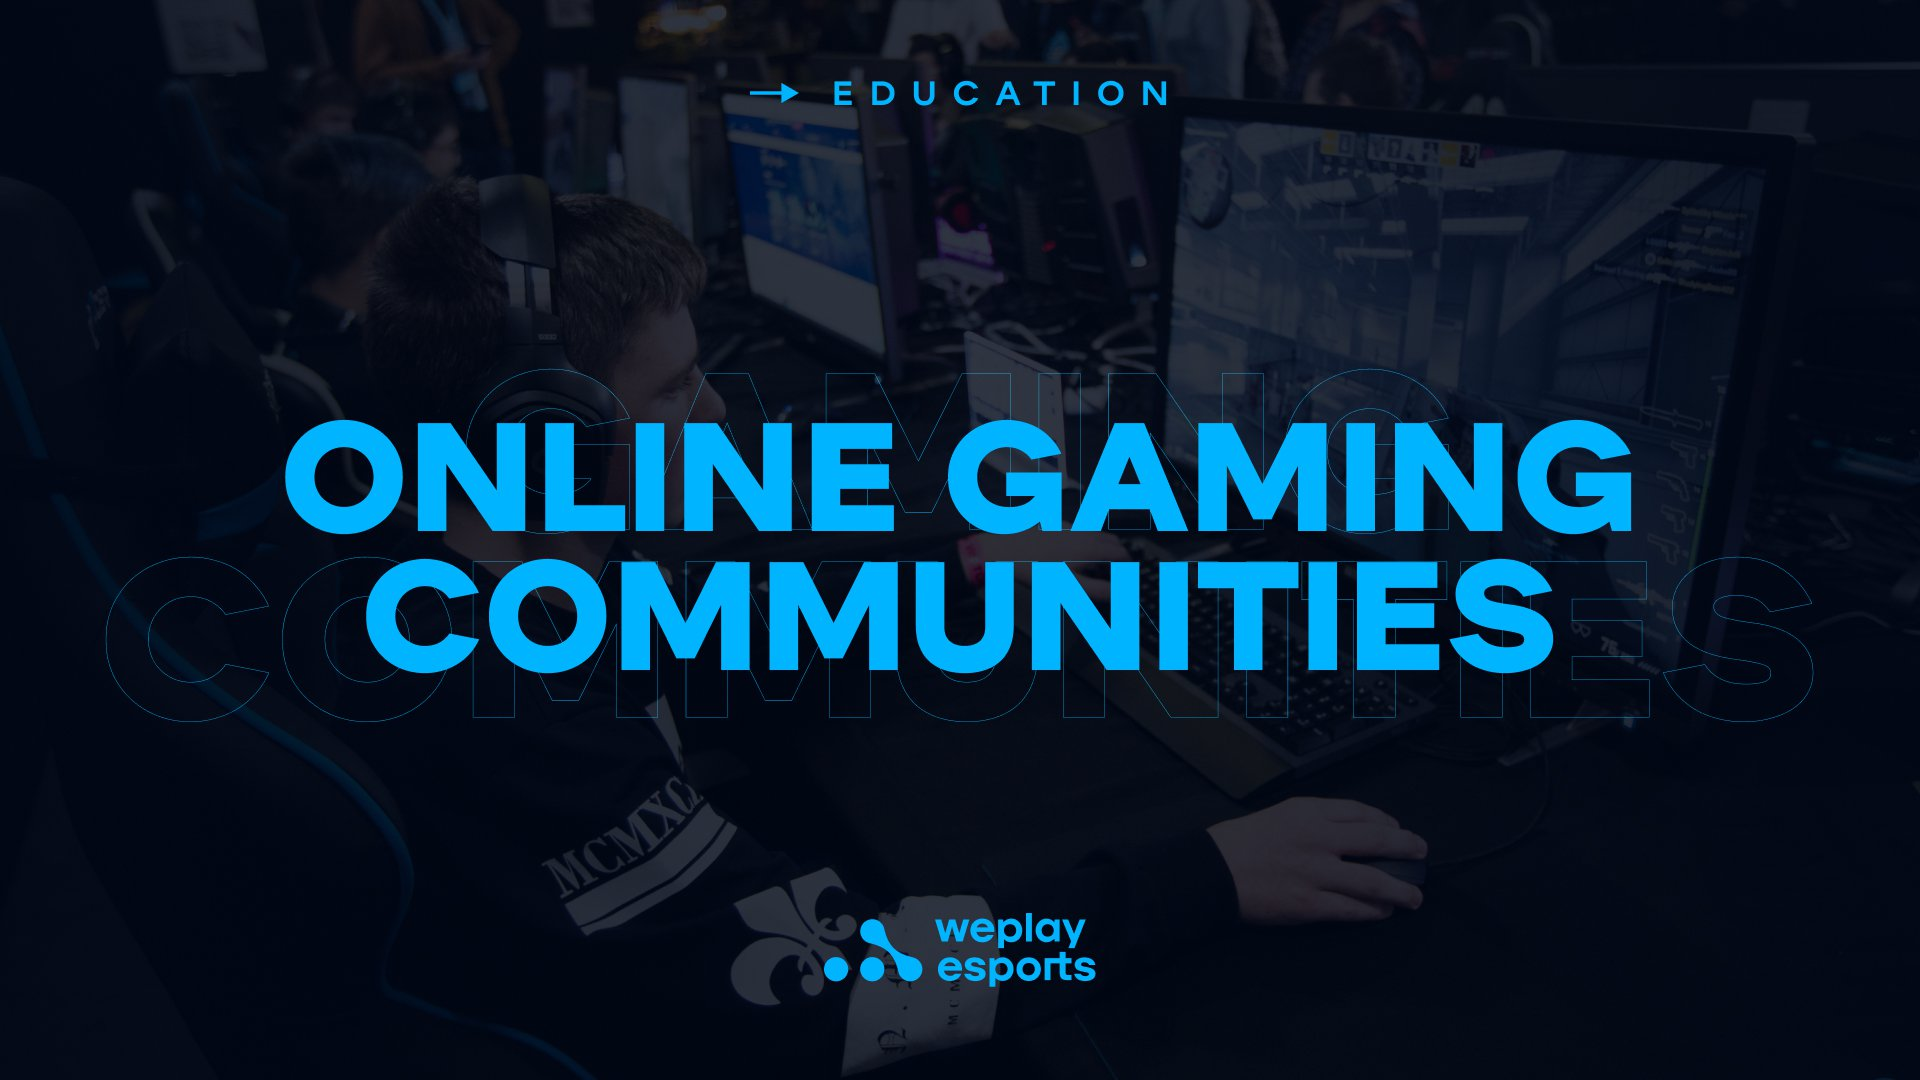 Online Gaming Communities. Image: WePlay Holding